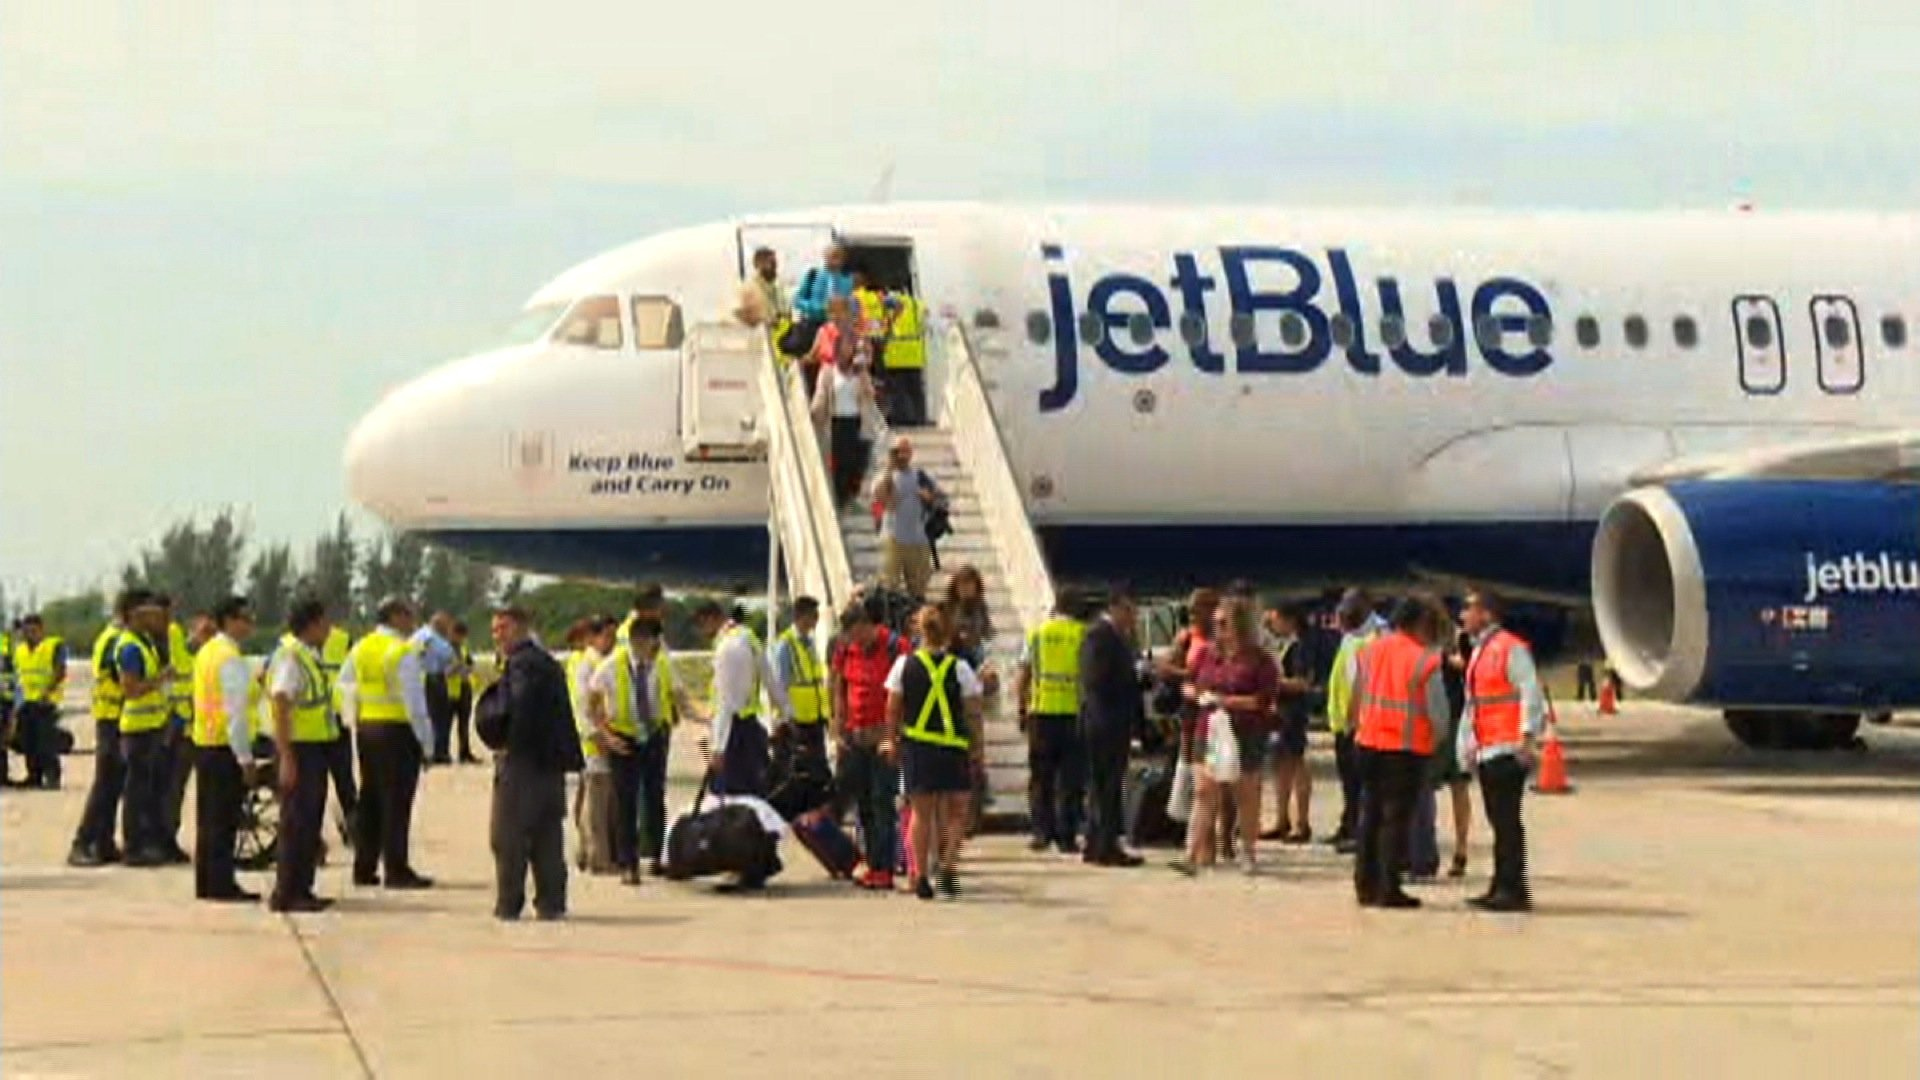 When JetBlue Flight 387 touched down Wednesday, August 31, 2016 in Cuba, it was the first direct commercial flight between the US and the island in over a half-century.